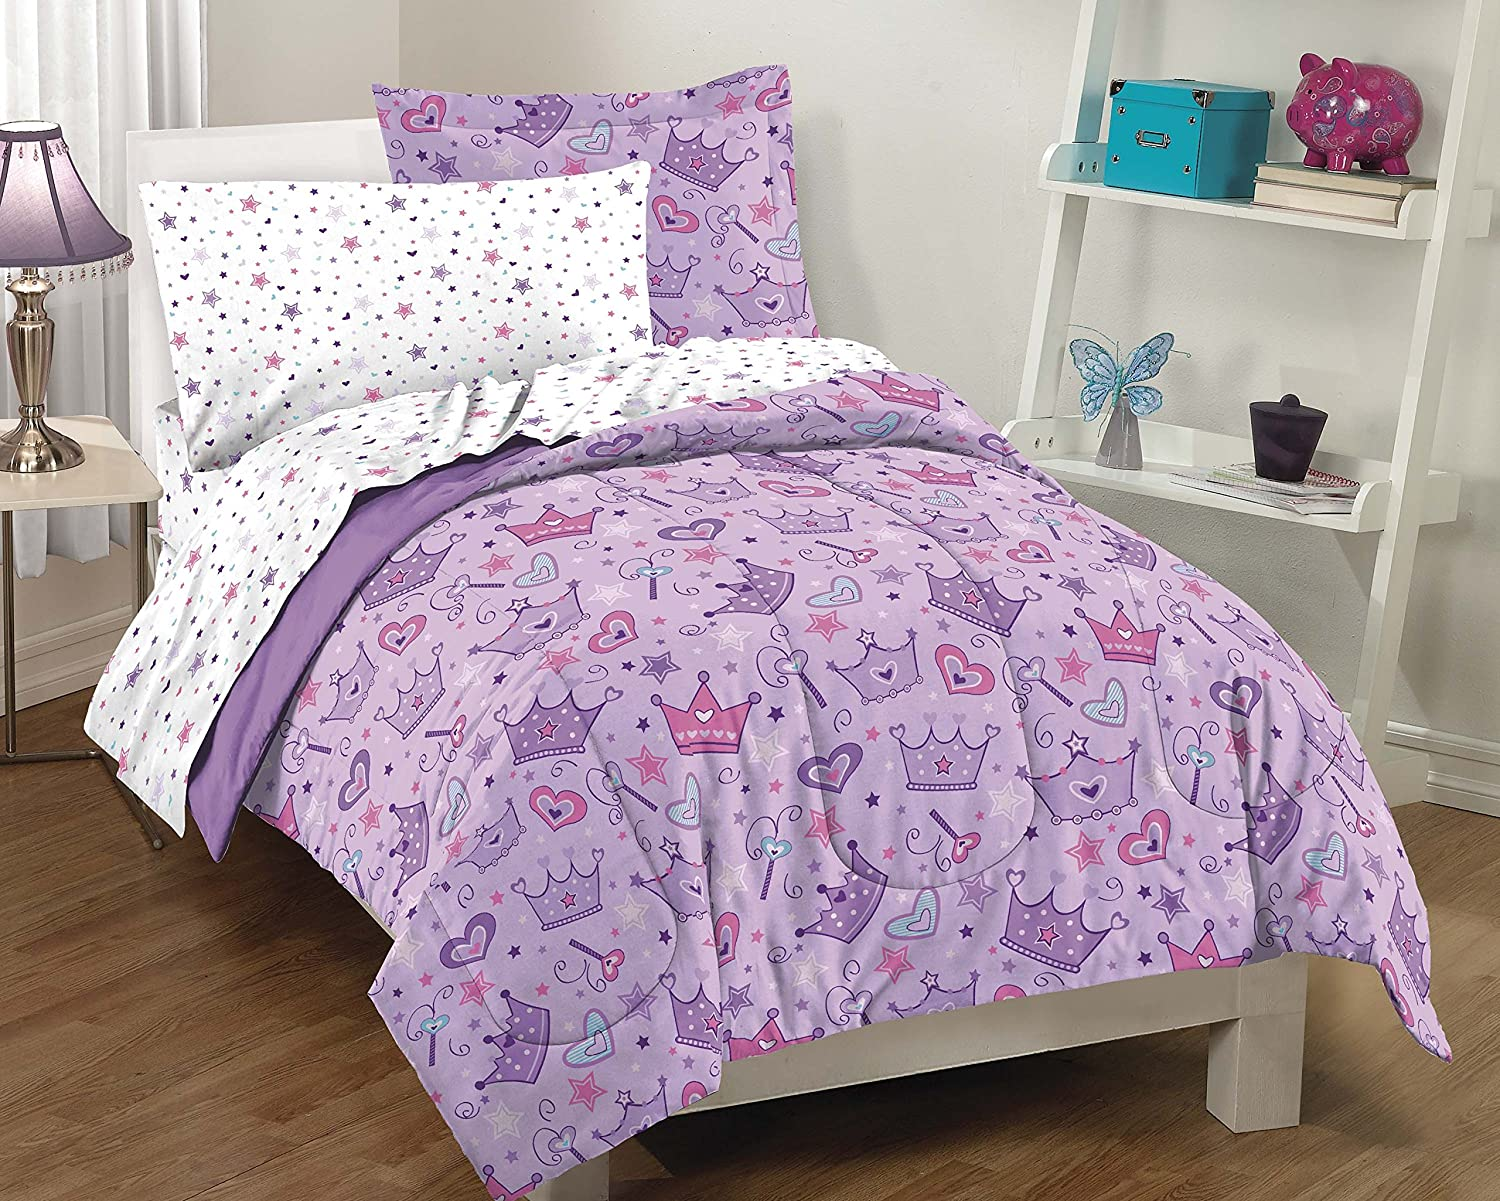 Purple Princess Hearts And Crowns Girls Comforter Set, Multi, Twin